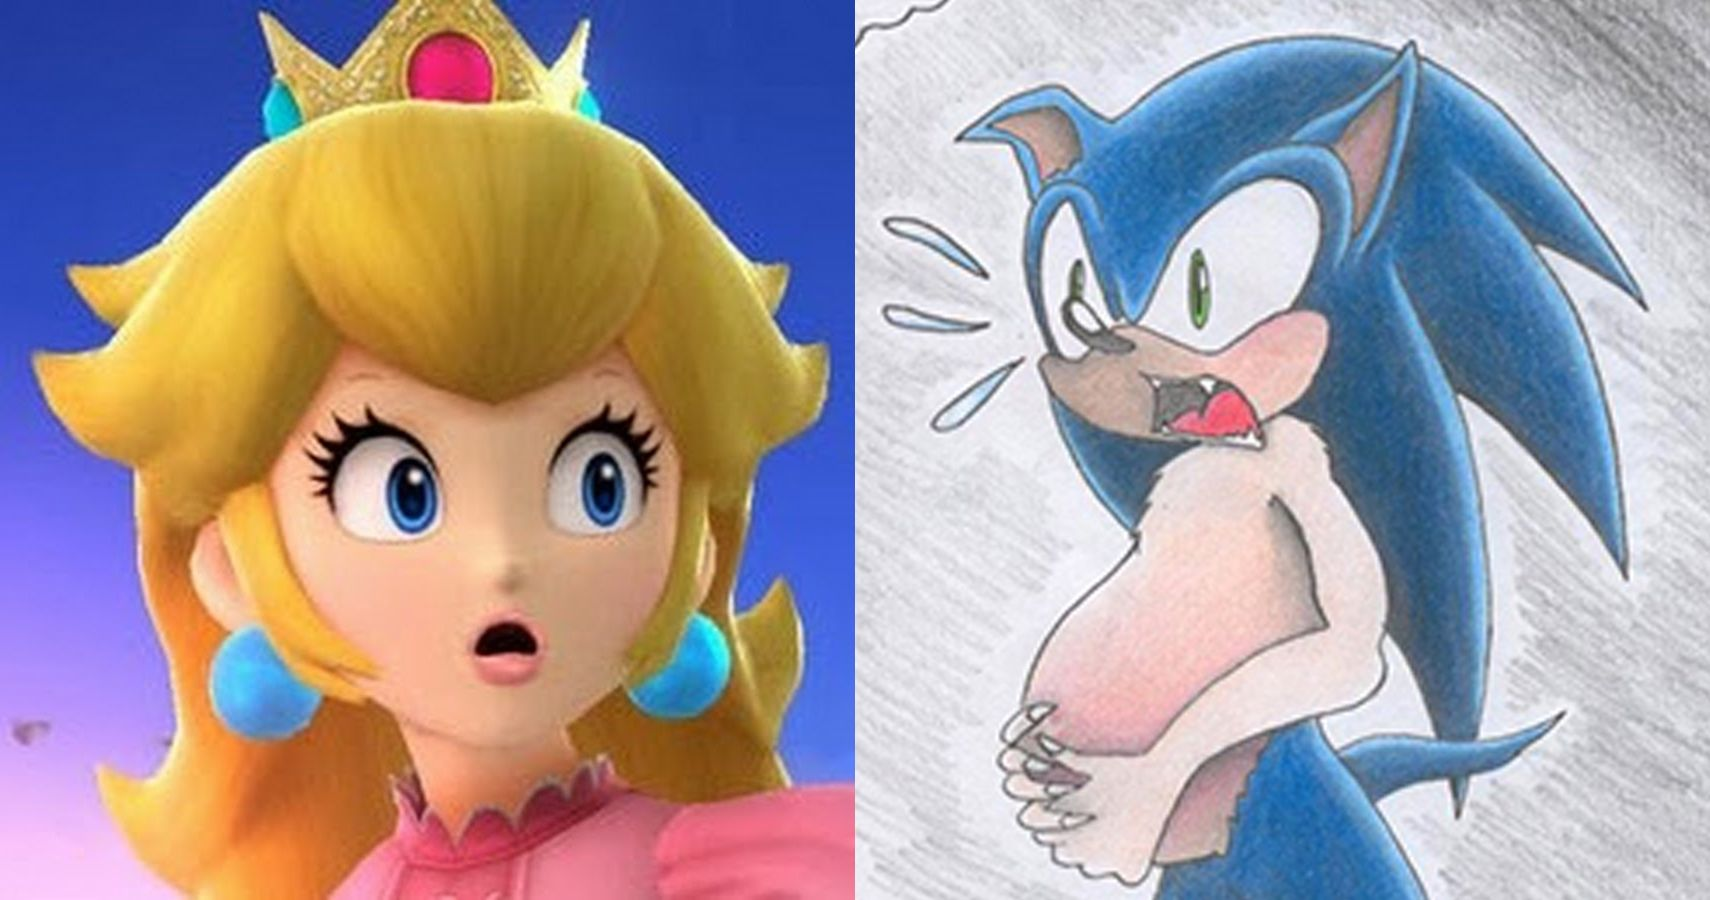 Why Is Sonic Pregnant Deviant Video Game Trends That Won T Go Away